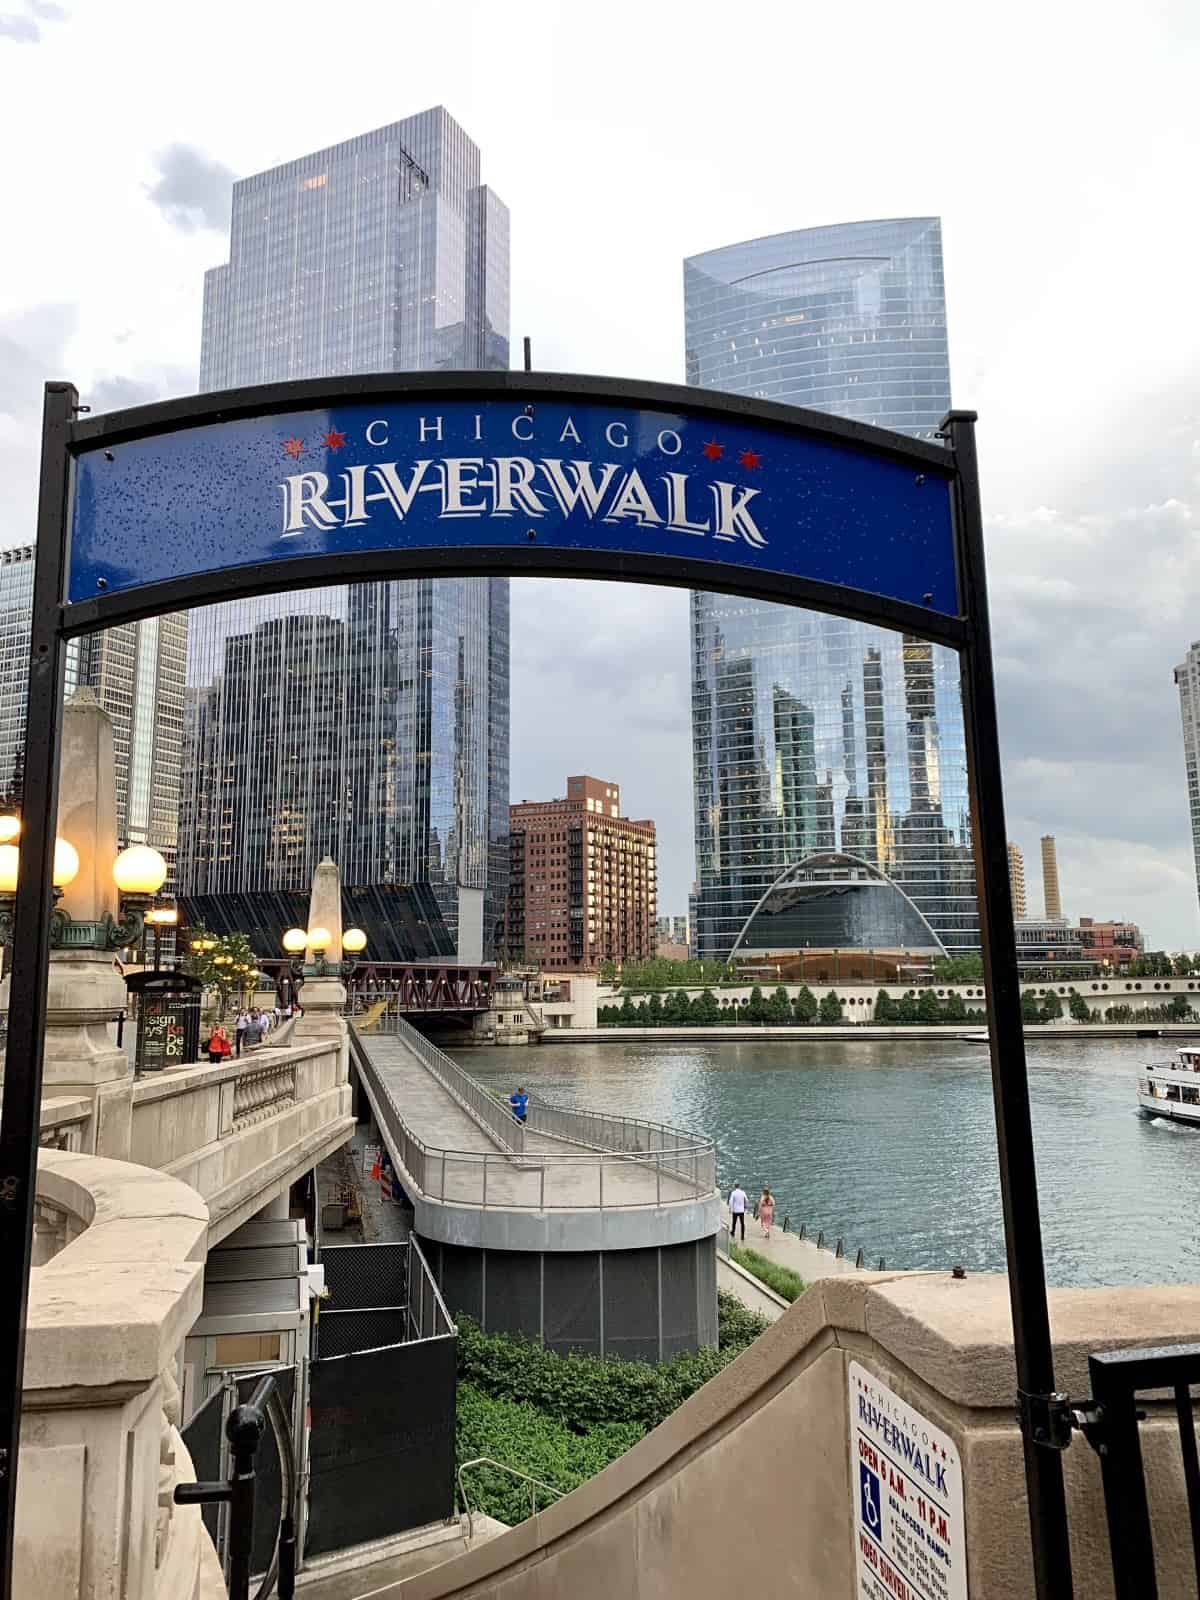 Things to do in Chicago for first-timers - spend time on the Riverwalk